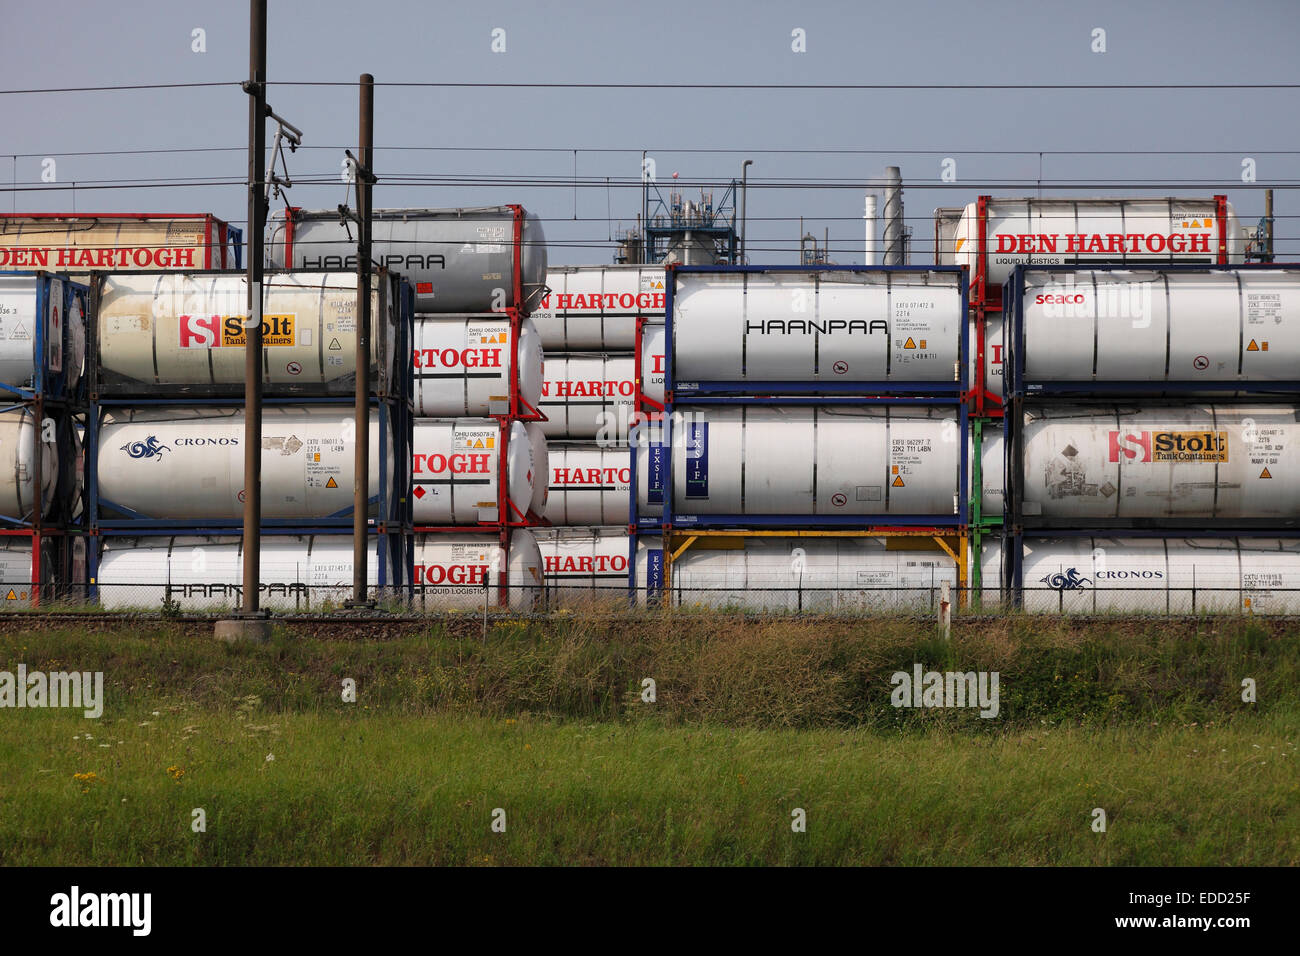 freight trains at the harbour in Rotterdam, Netherland - Stock Image